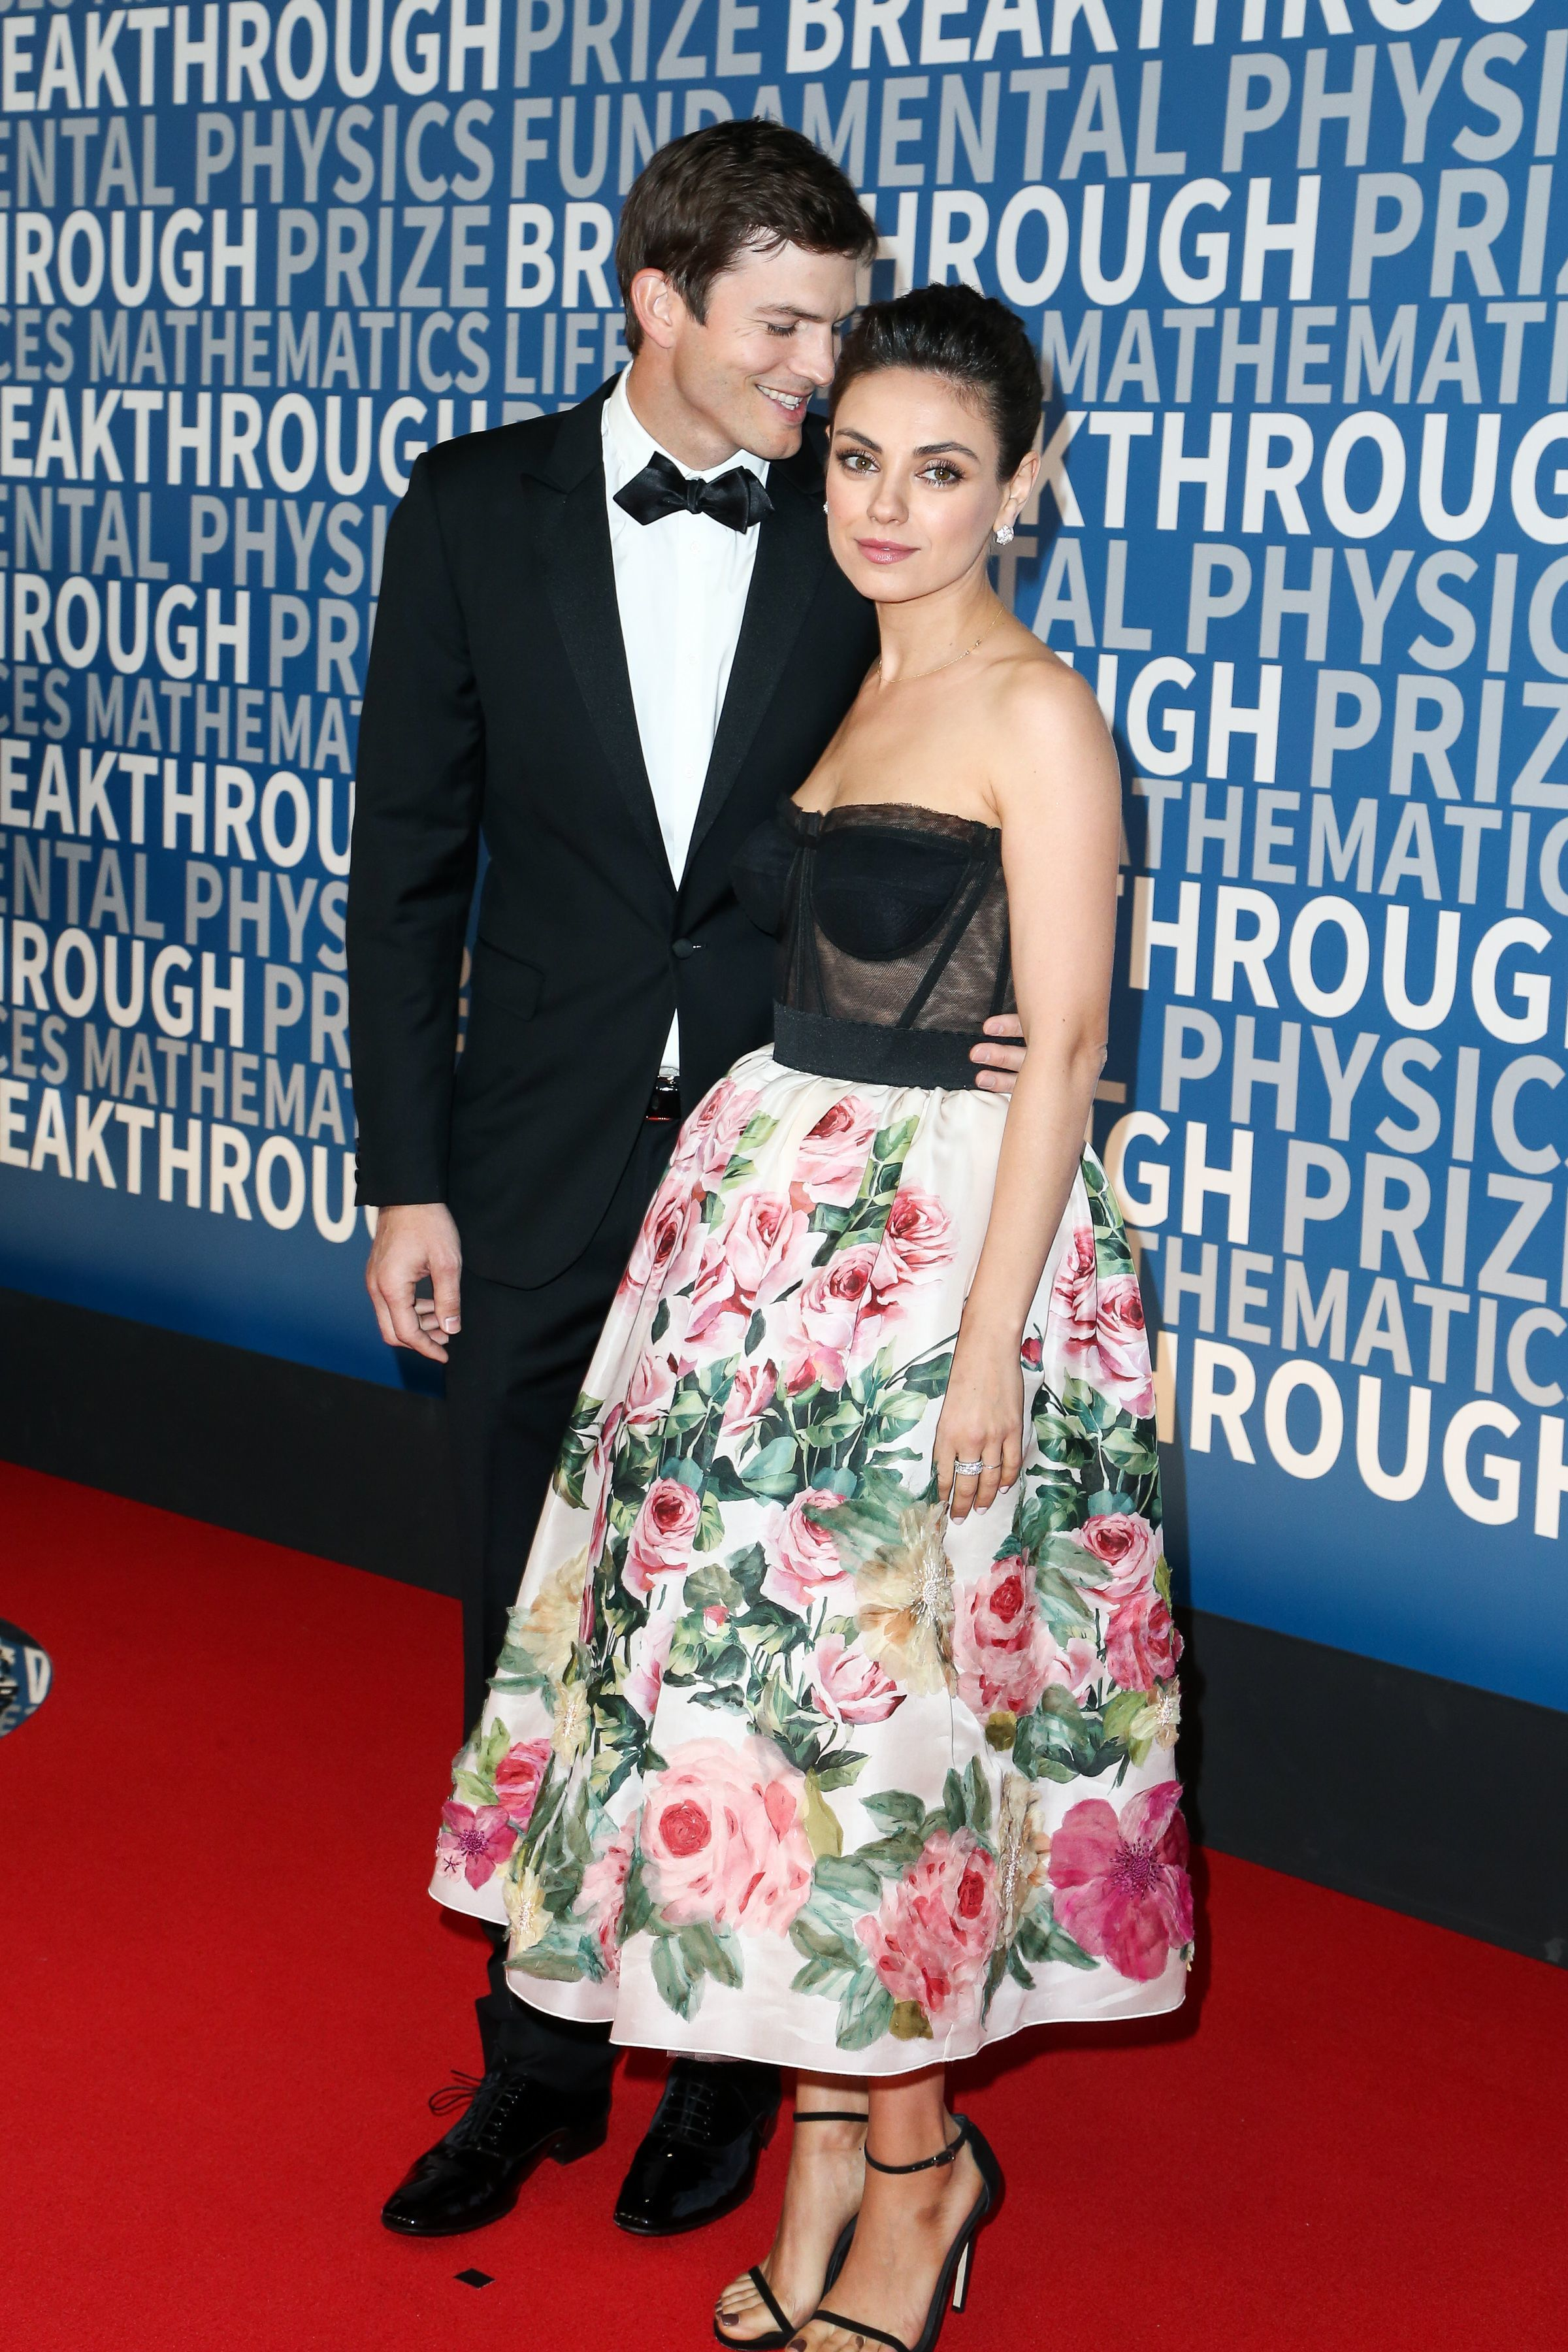 Ashton Kutcher and Mila Kunis attend the 6th Annual Breakthrough Prize in Mountain View, Calif., on Dec. 3, 2017.